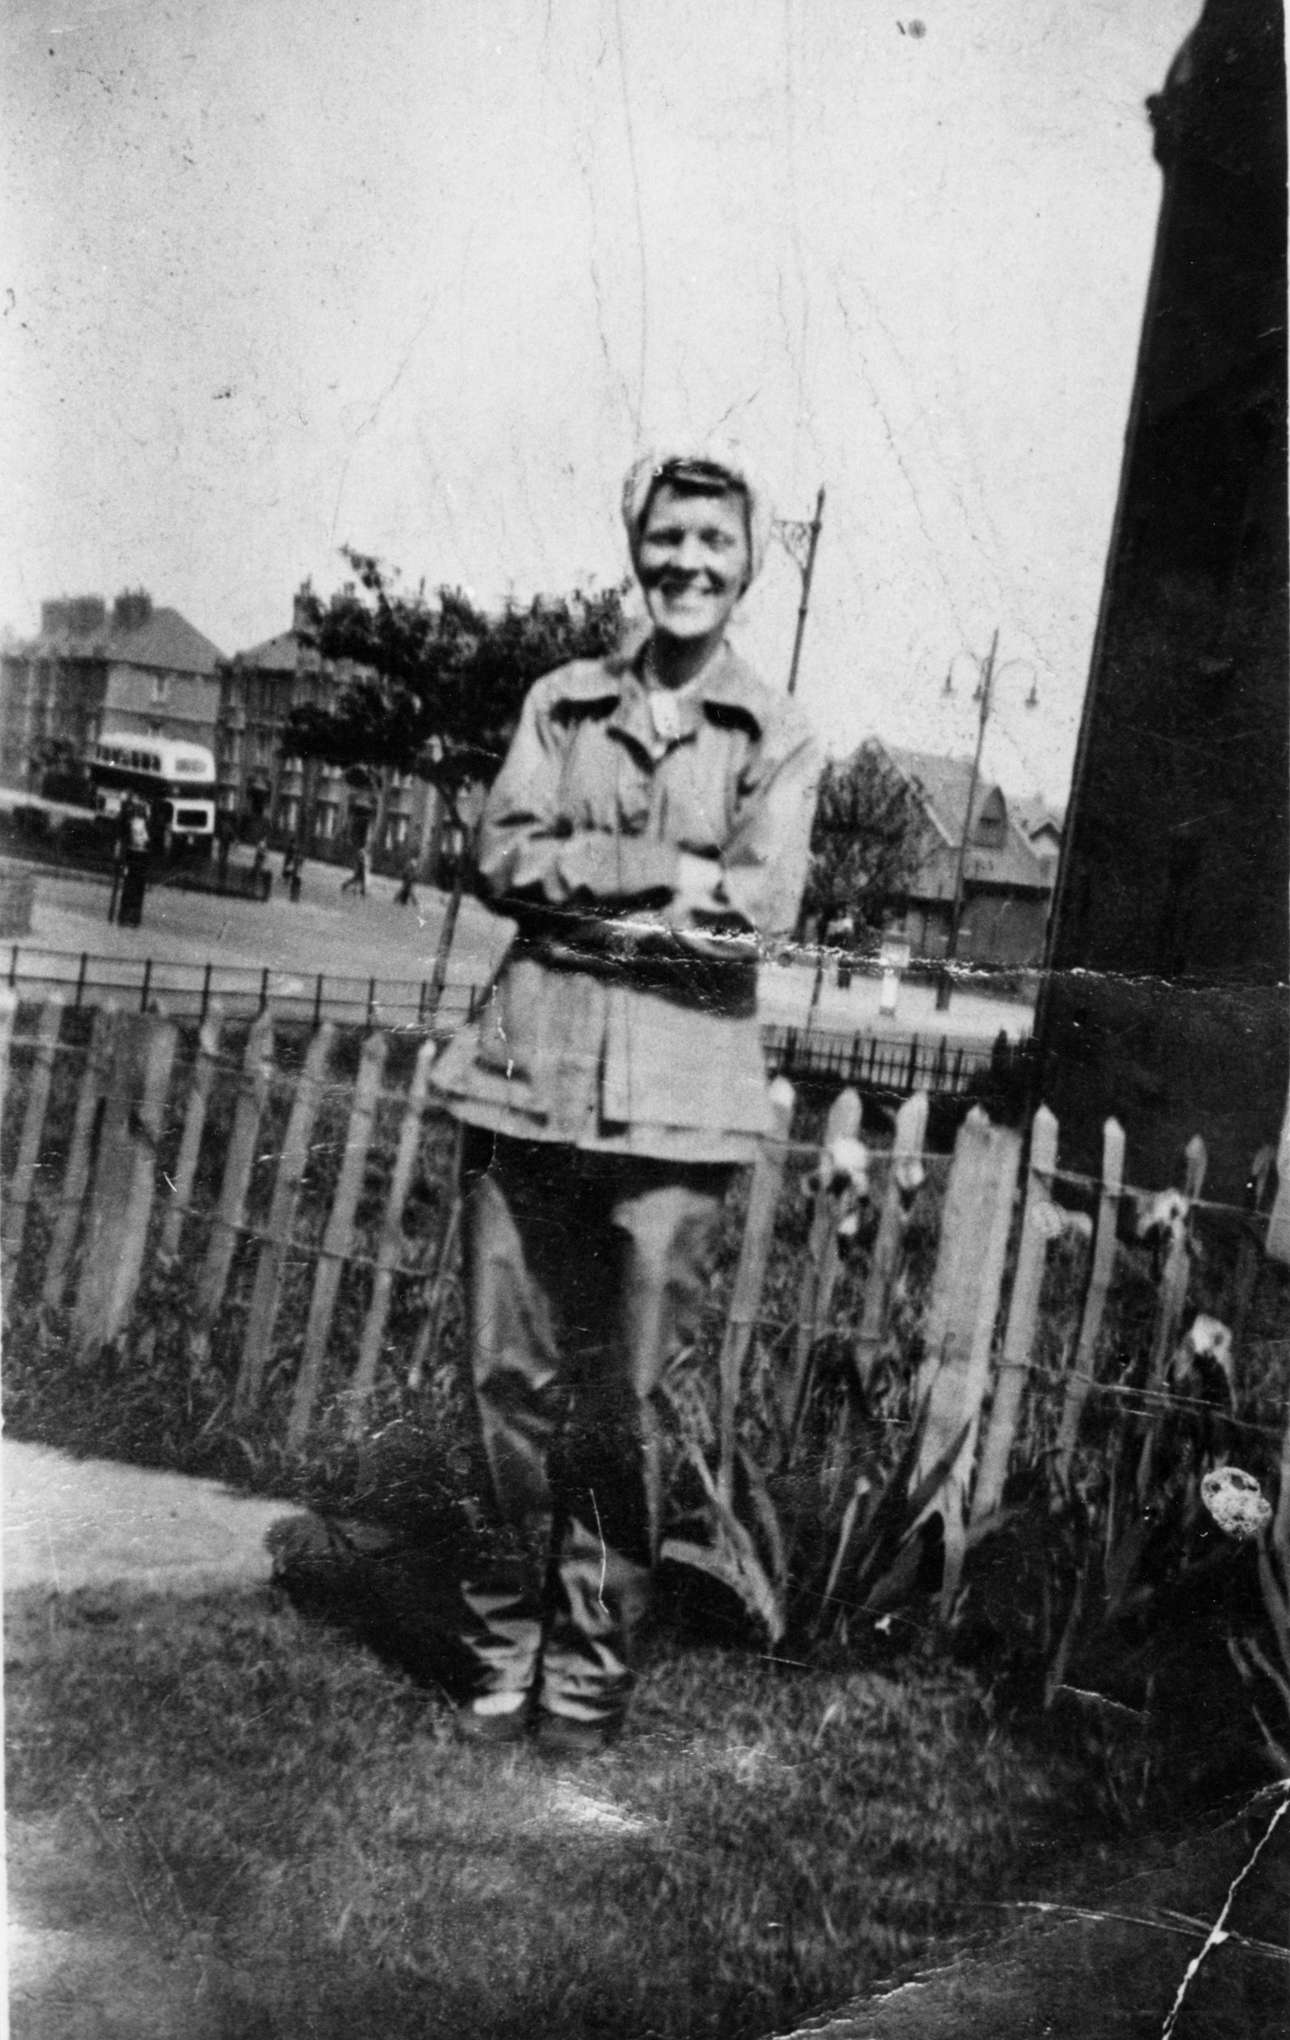 Woman In Workclothes In Garden At Lochend 1940s